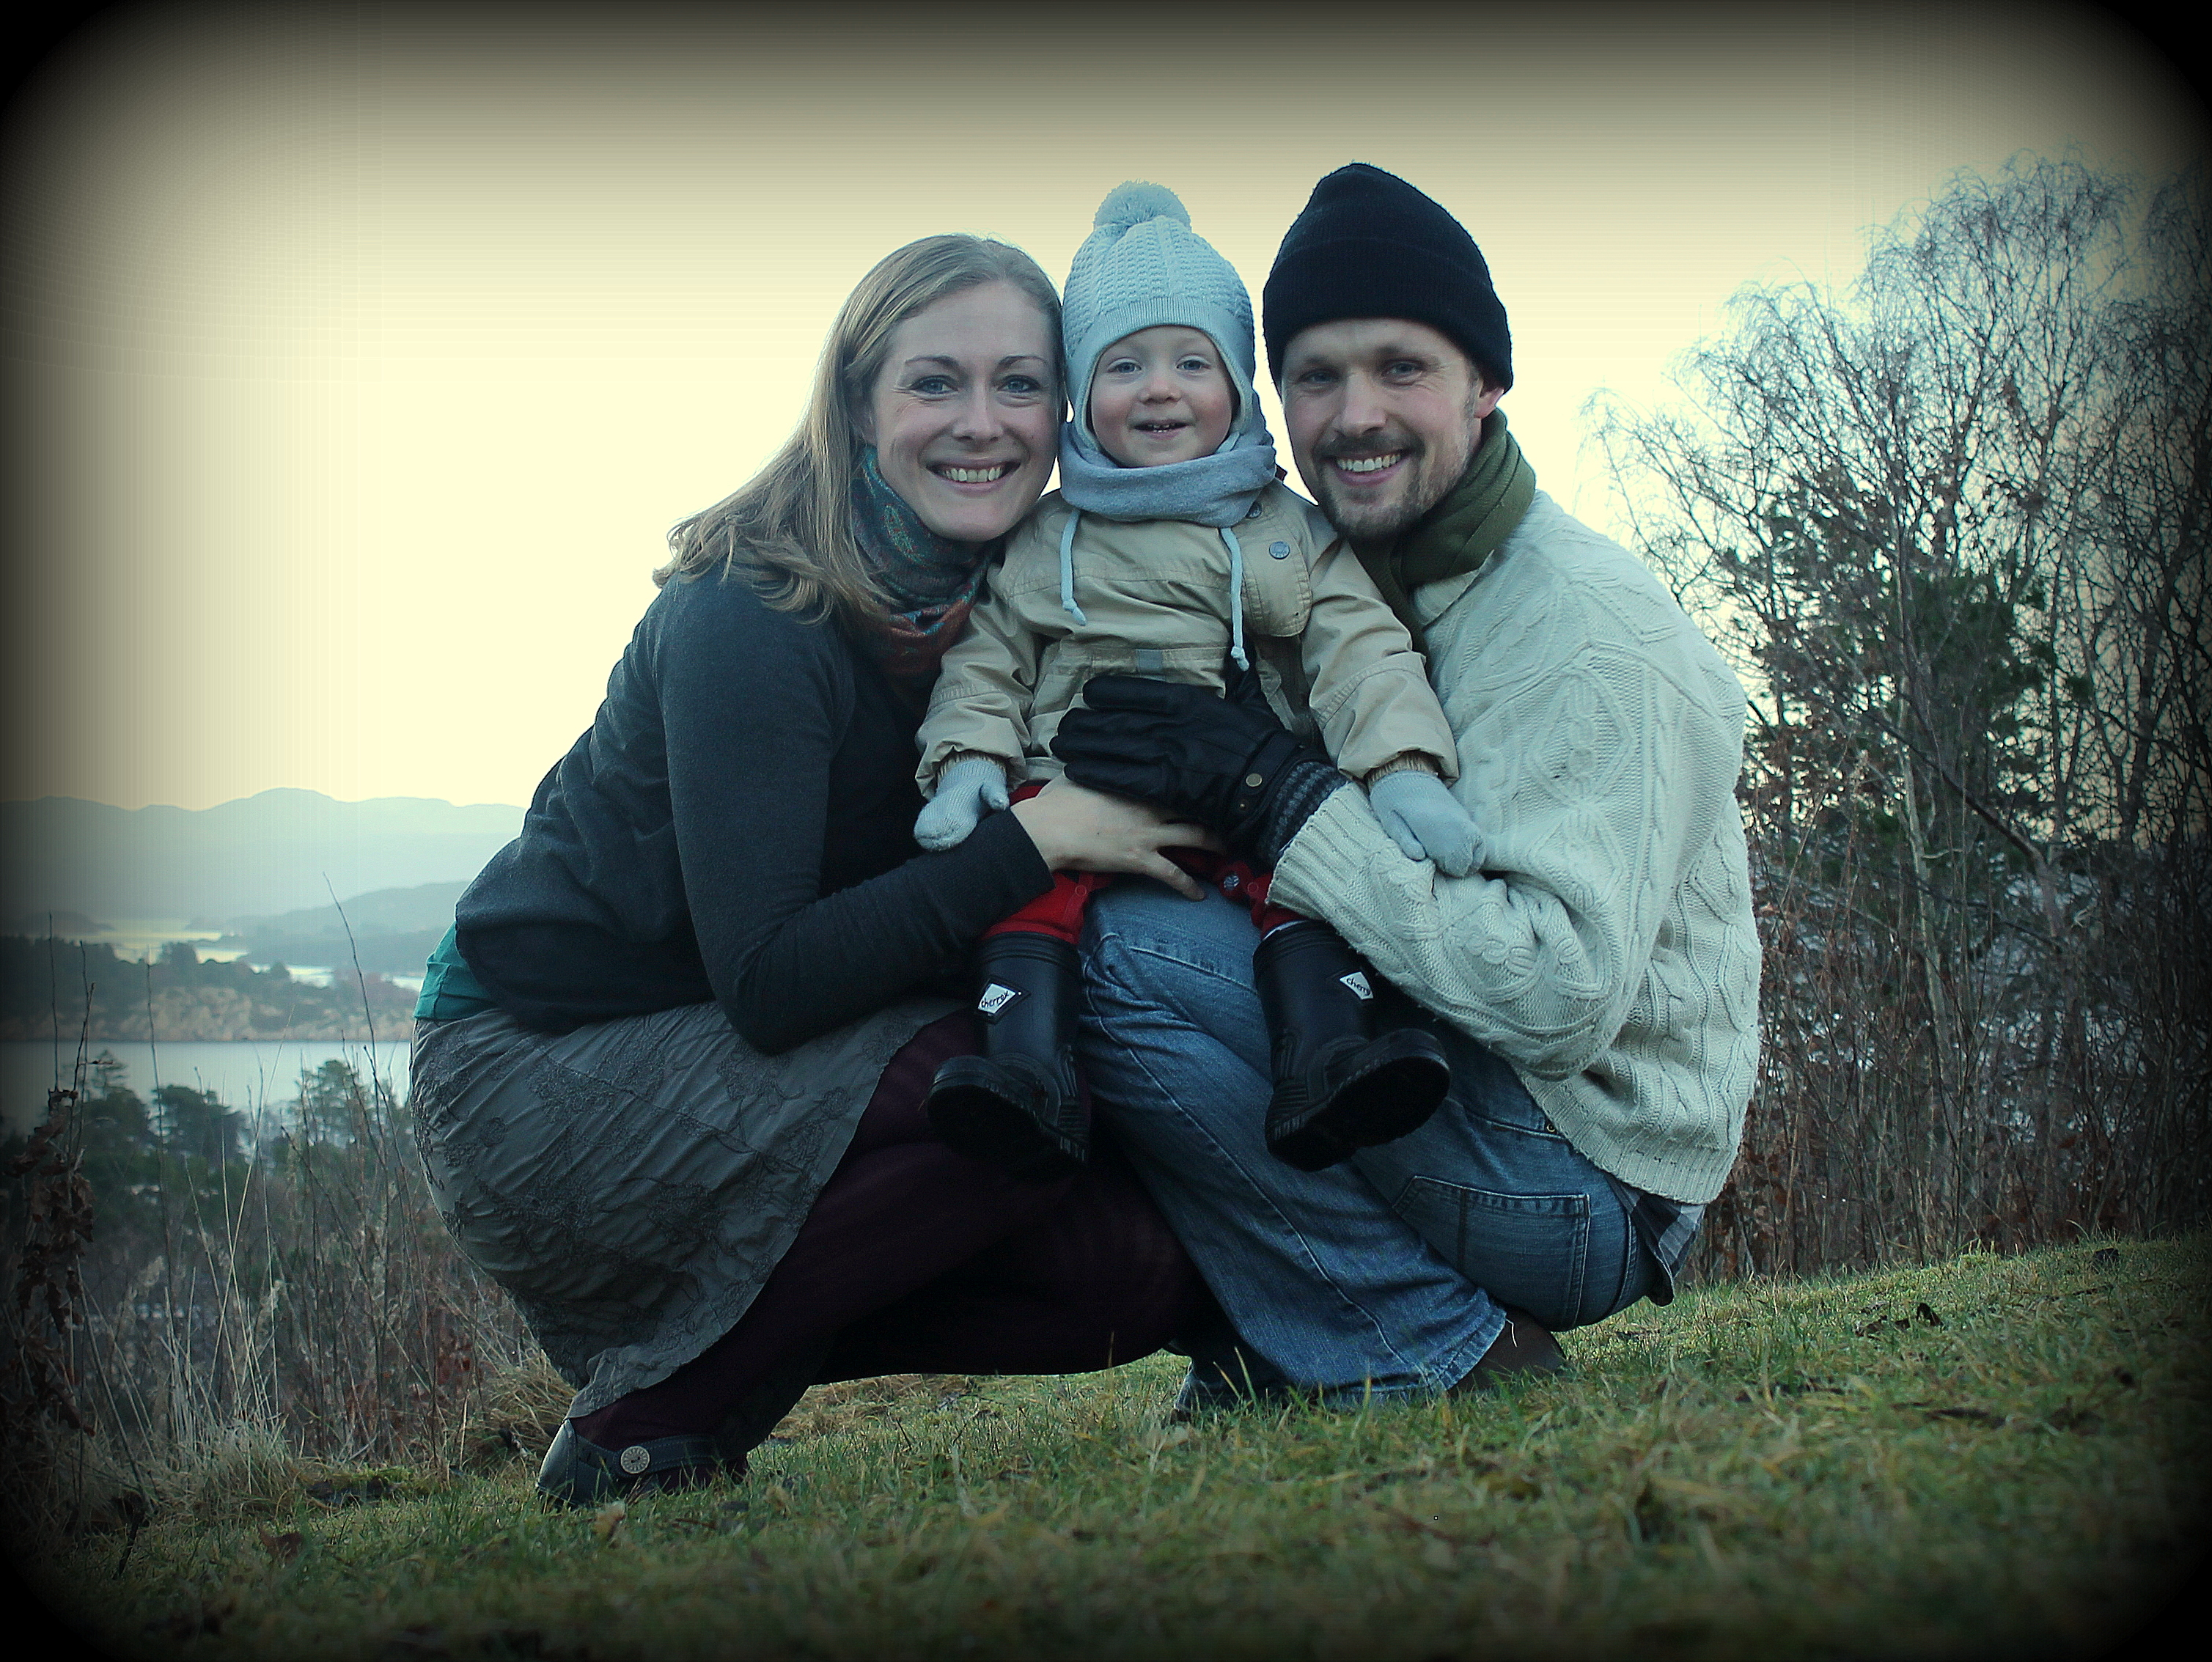 Kendra, Jakob, and Gjerulf